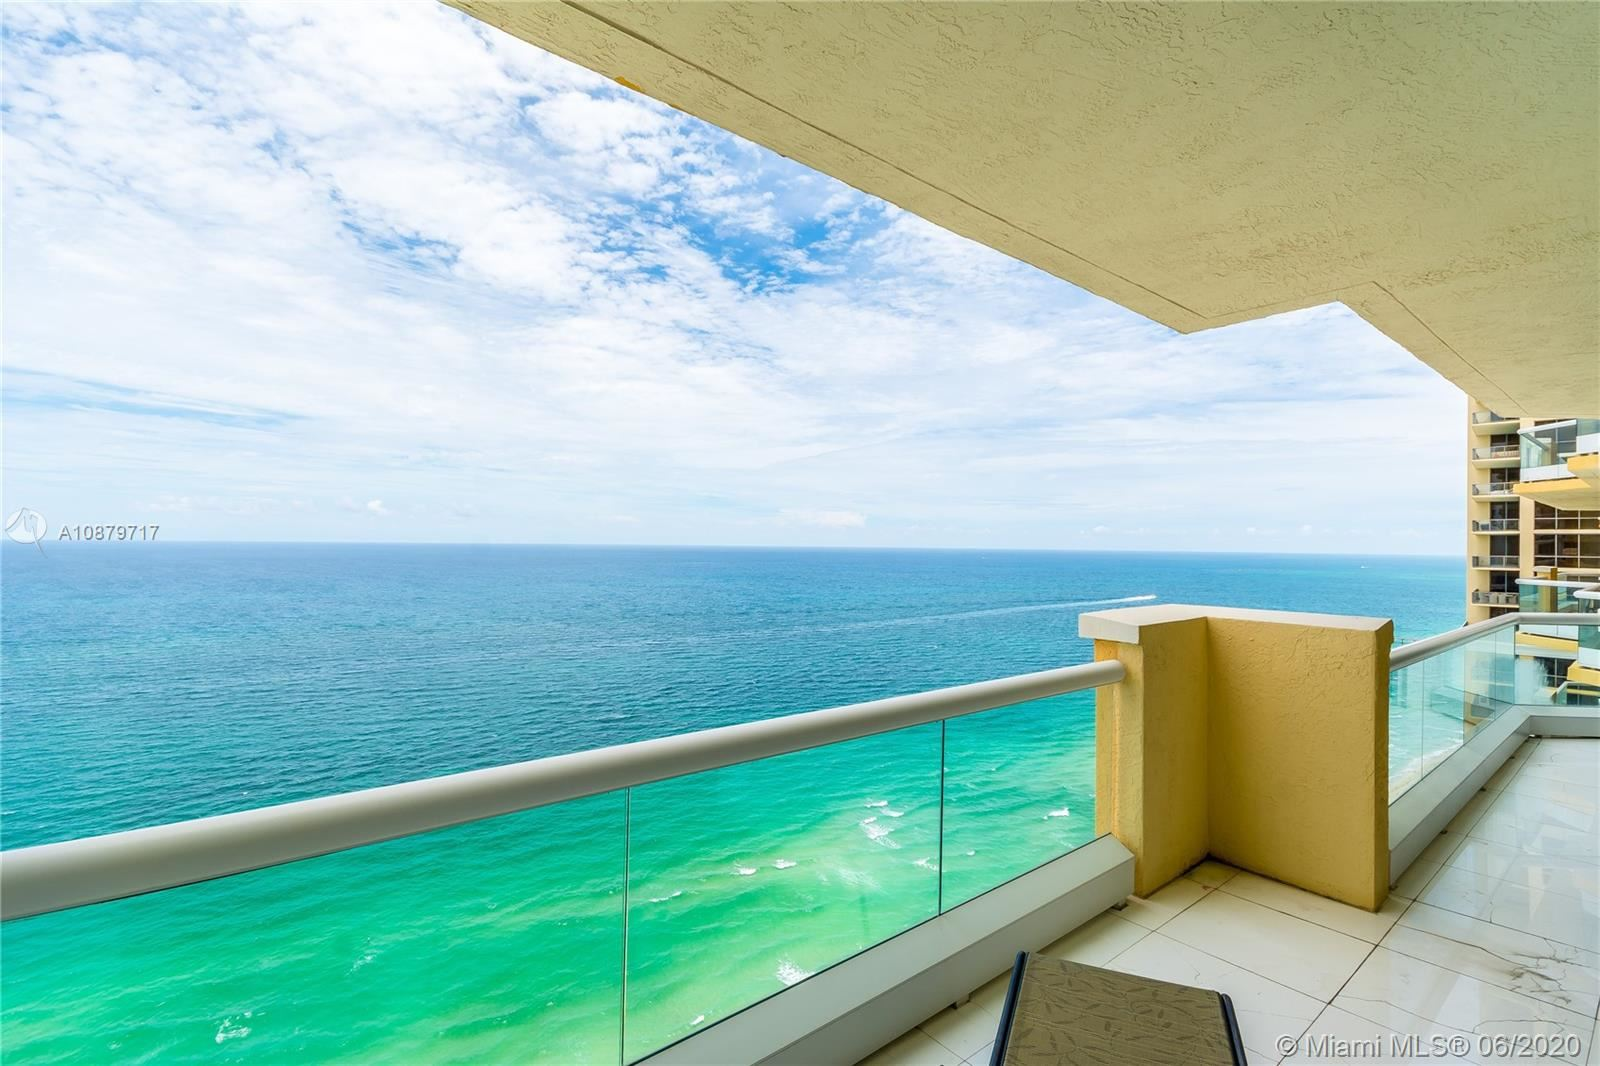 17875 Collins Ave #4102, Sunny Isles, FL 33160 - #: A10879717